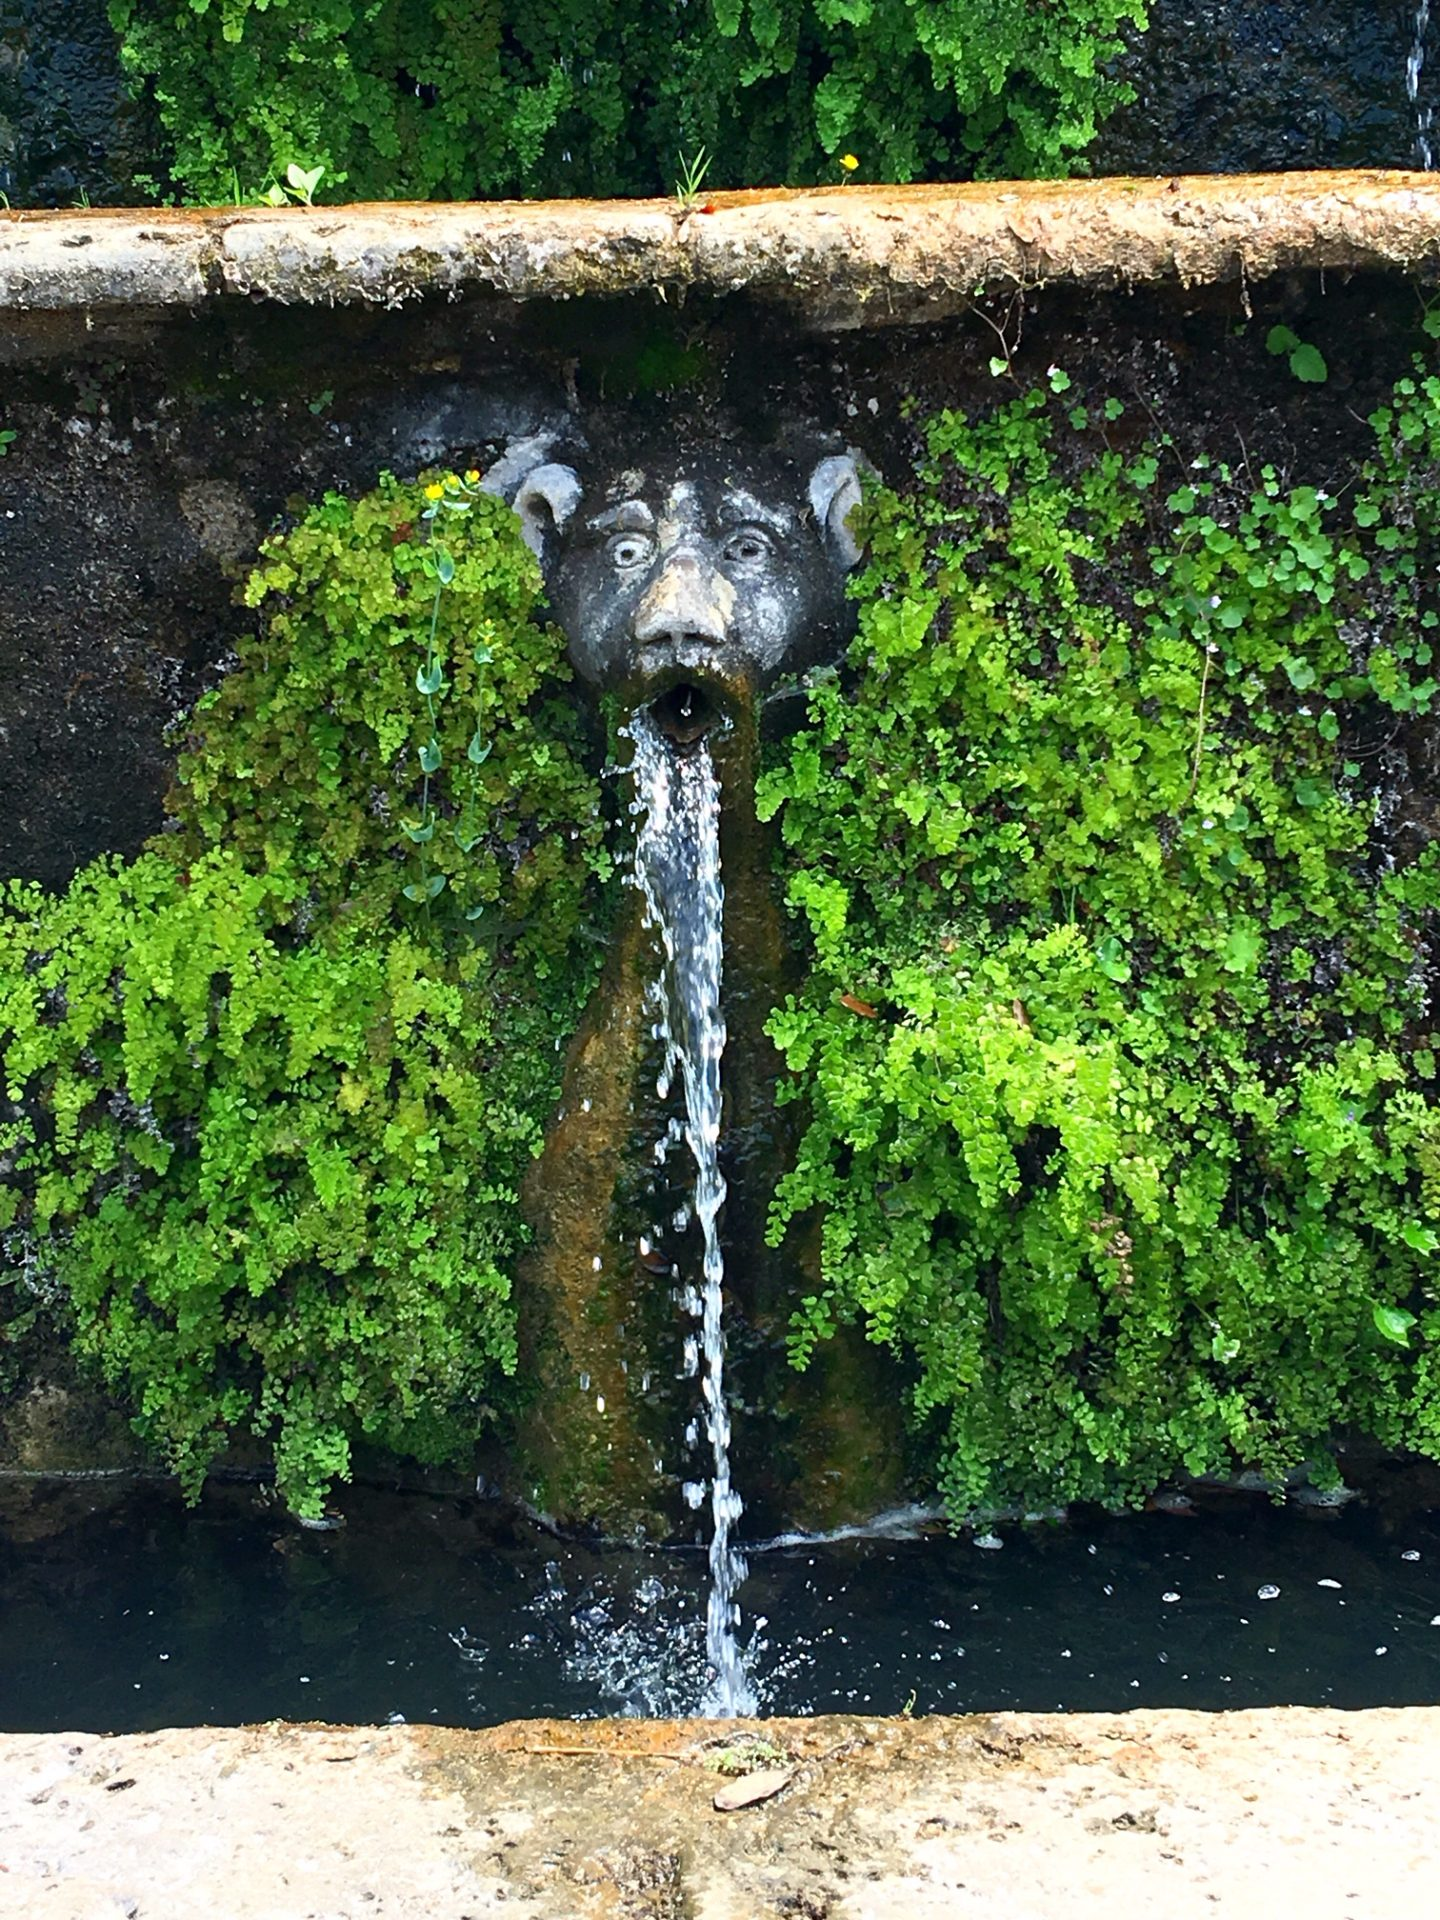 Villa d'Este Tivoli gargoyle fountain close up